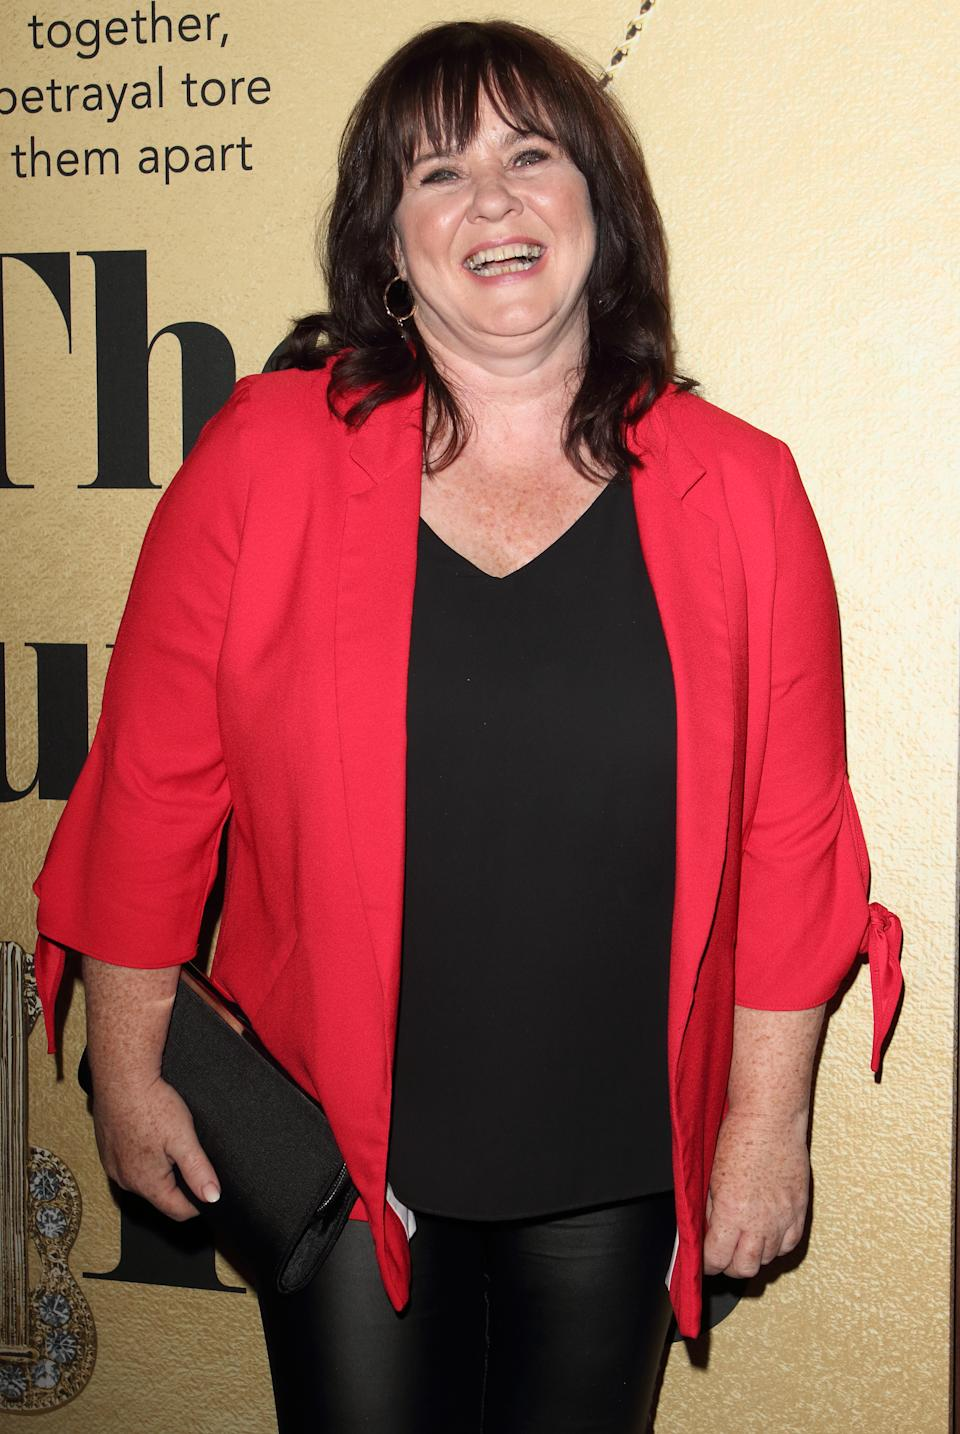 Coleen Nolan at The Thunder Girls book launch party at The Court, Kingly Street. (Photo by Keith Mayhew/SOPA Images/LightRocket via Getty Images)